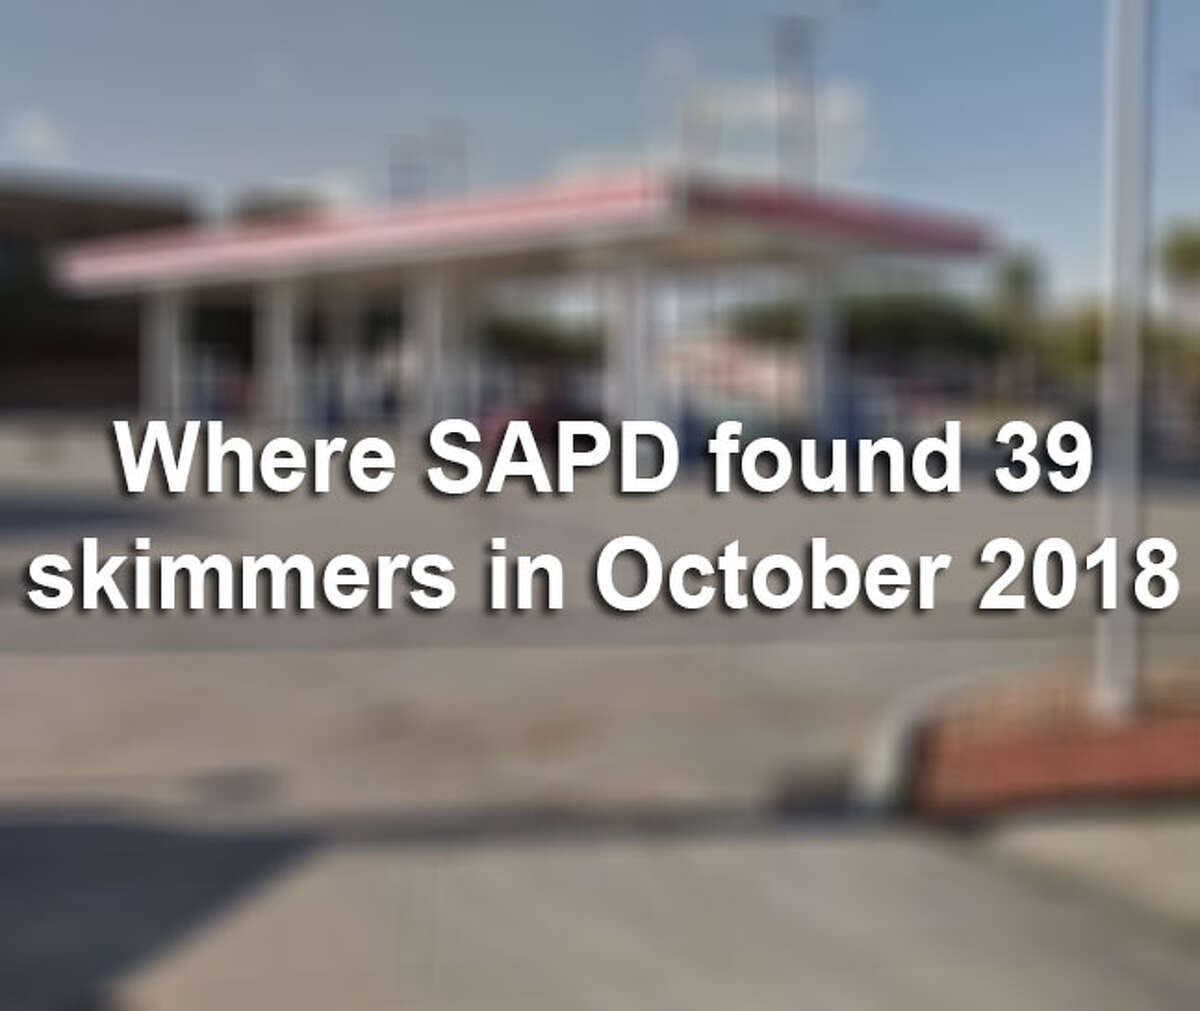 Police picked up 39 credit card skimmers at gas stations across San Antonio in October, according to data obtained by mySA.com.